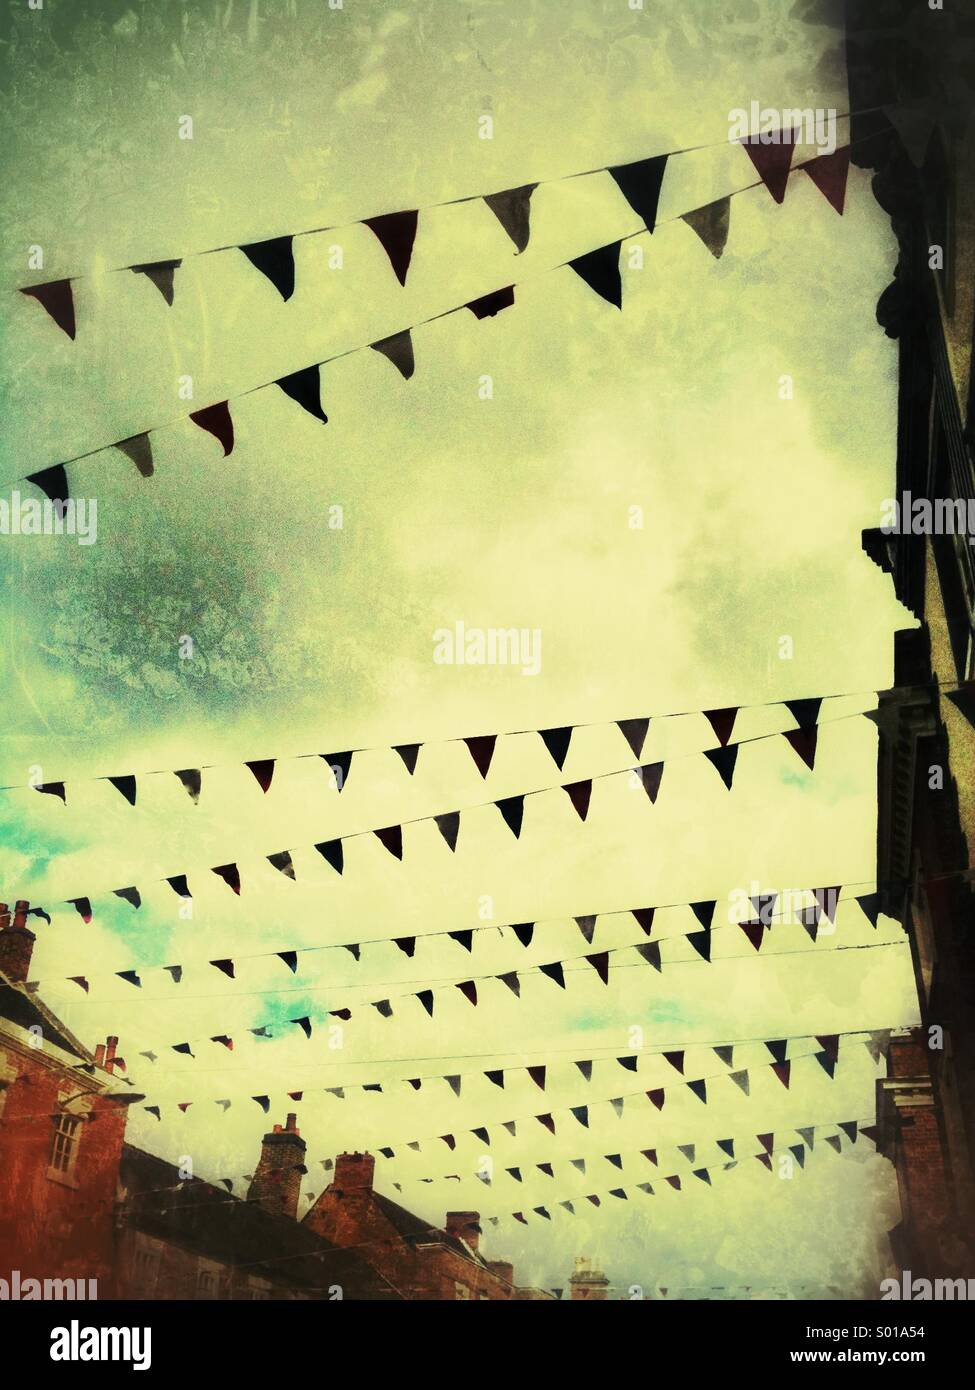 Bunting in a street scene with a grunge effect. - Stock Image